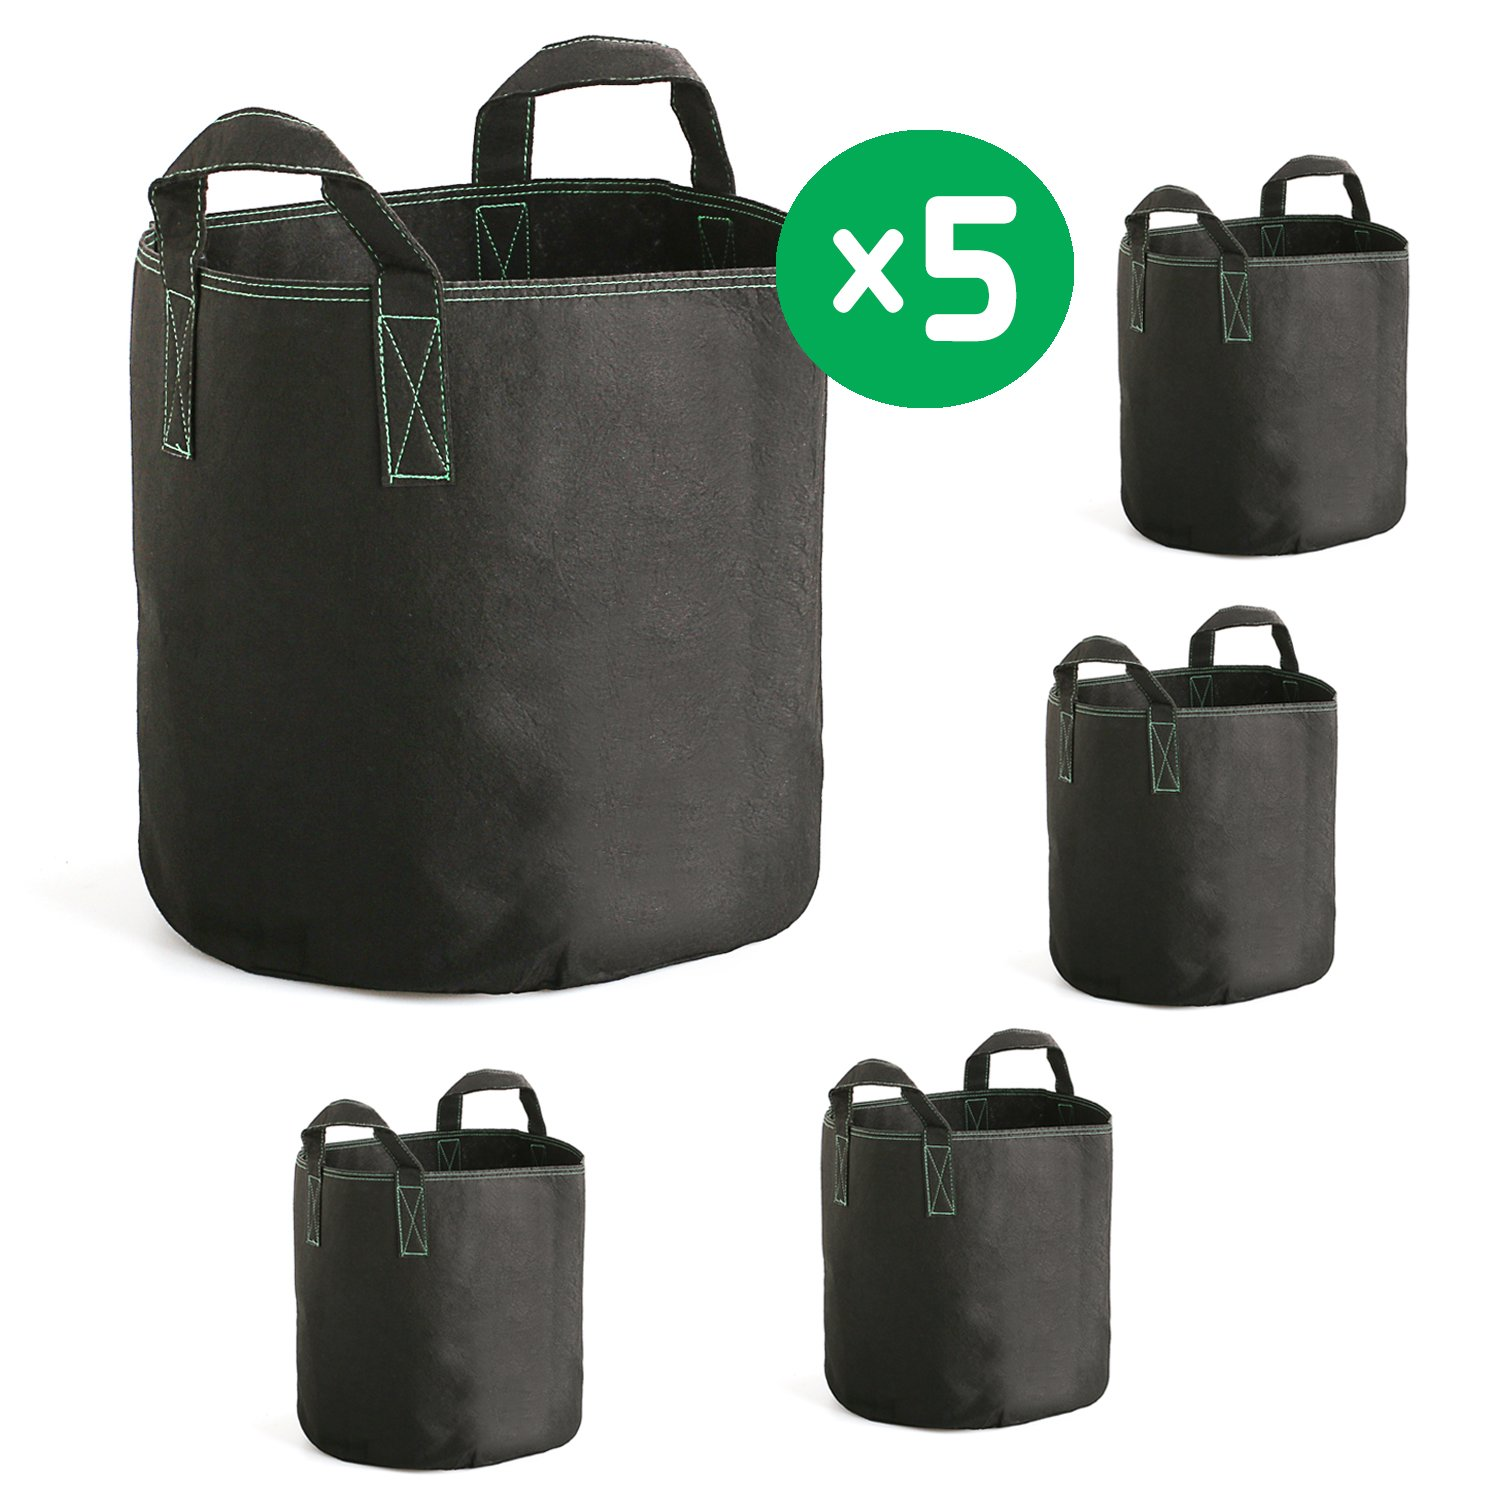 Hovinso Grow Bags 7 Gallon, 5-Pack Thickened Non-Woven Plant Fabric Aeration Pots Container with Handles for Nursery Garden and Planting,Reusable and Durable